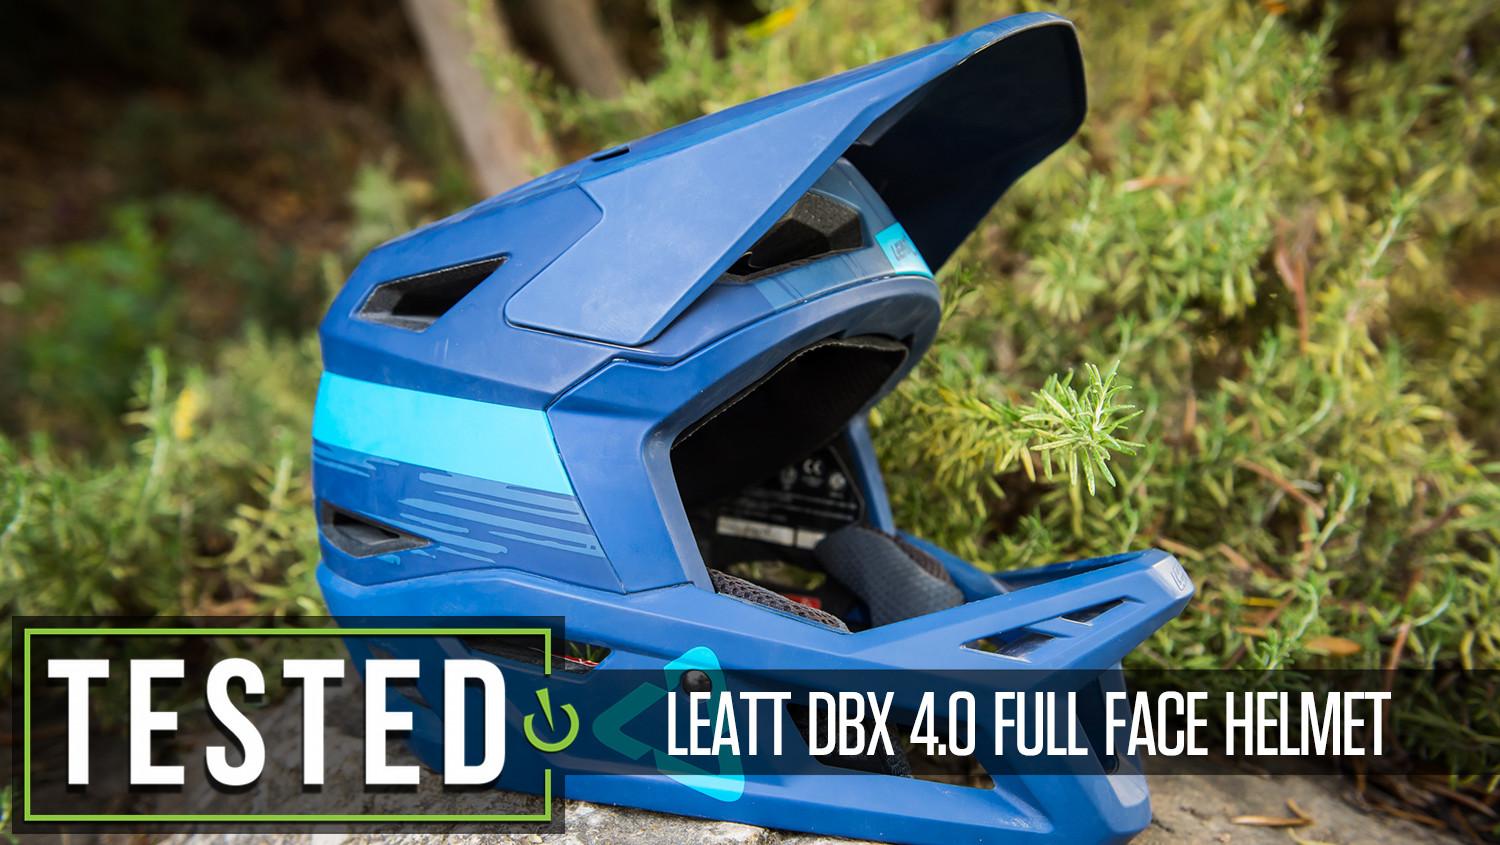 Tested: Leatt's All-New DBX 4.0 Lightweight Full Face Helmet